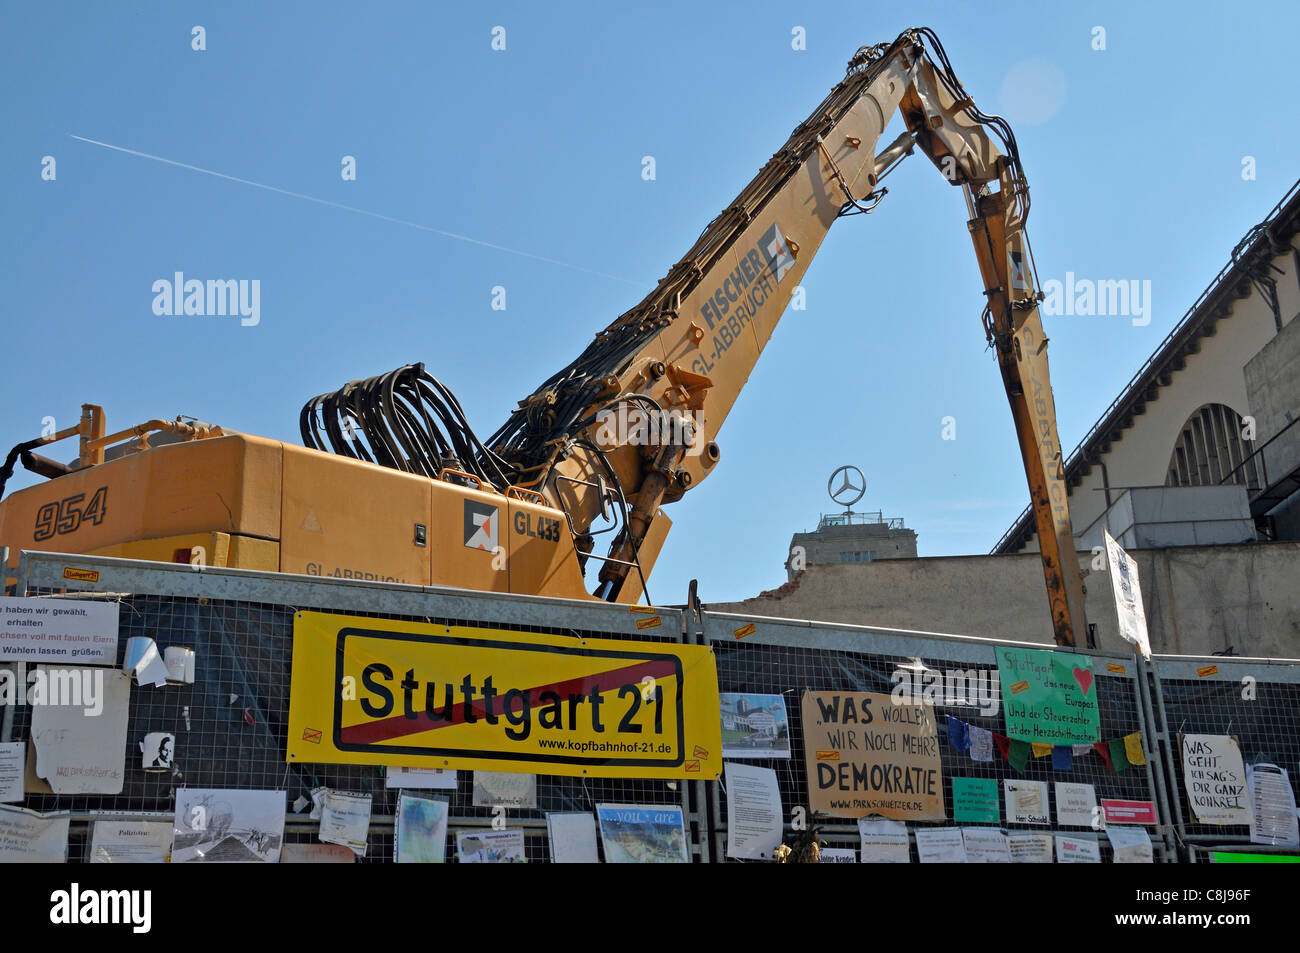 Demolition work, roadblock, cordon, railway station, construction project, fence, Germany, Europe, central station, - Stock Image